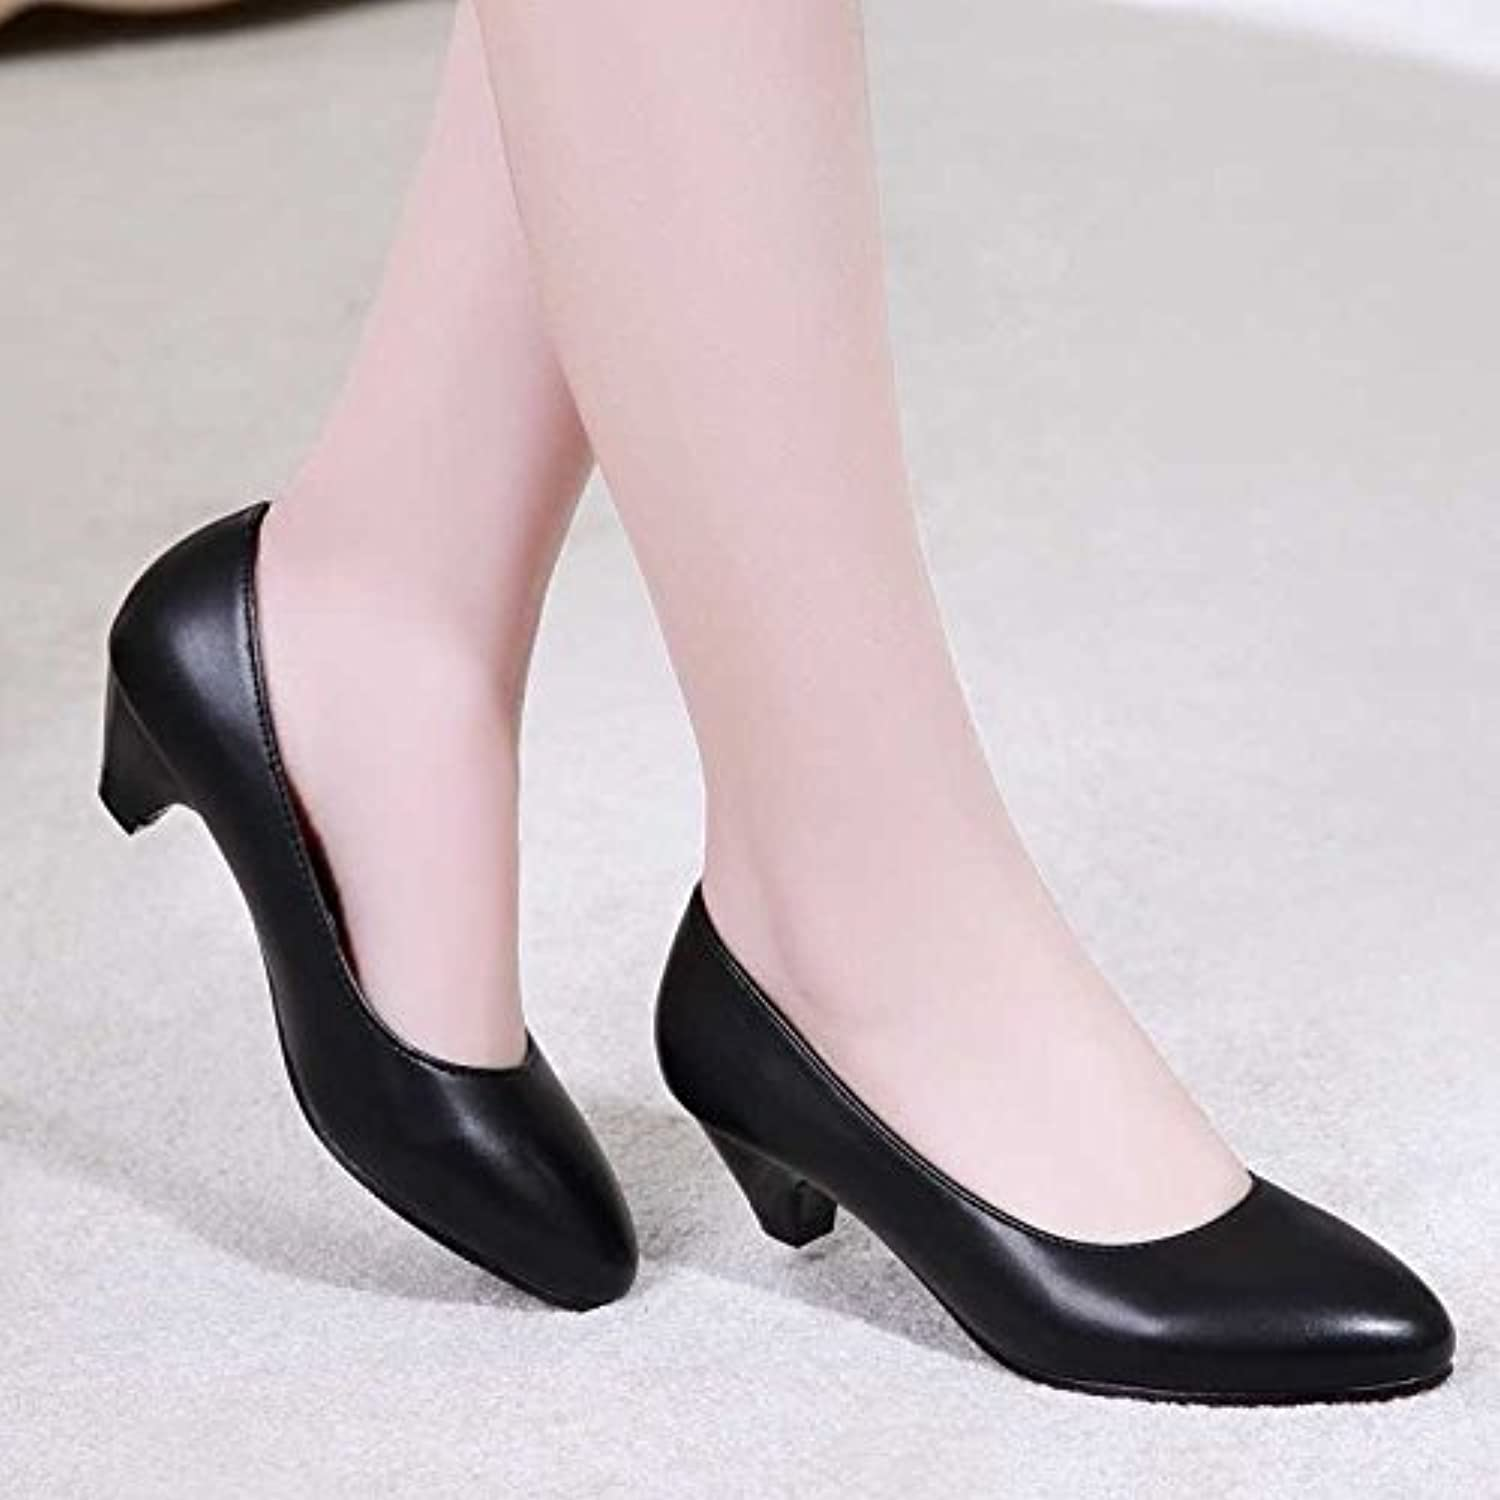 GAOLIM The End Of The Summer Black Soft shoes, Women Work With Anti-Slip Women'S shoes Occupational Light-Girl Painless Work shoes